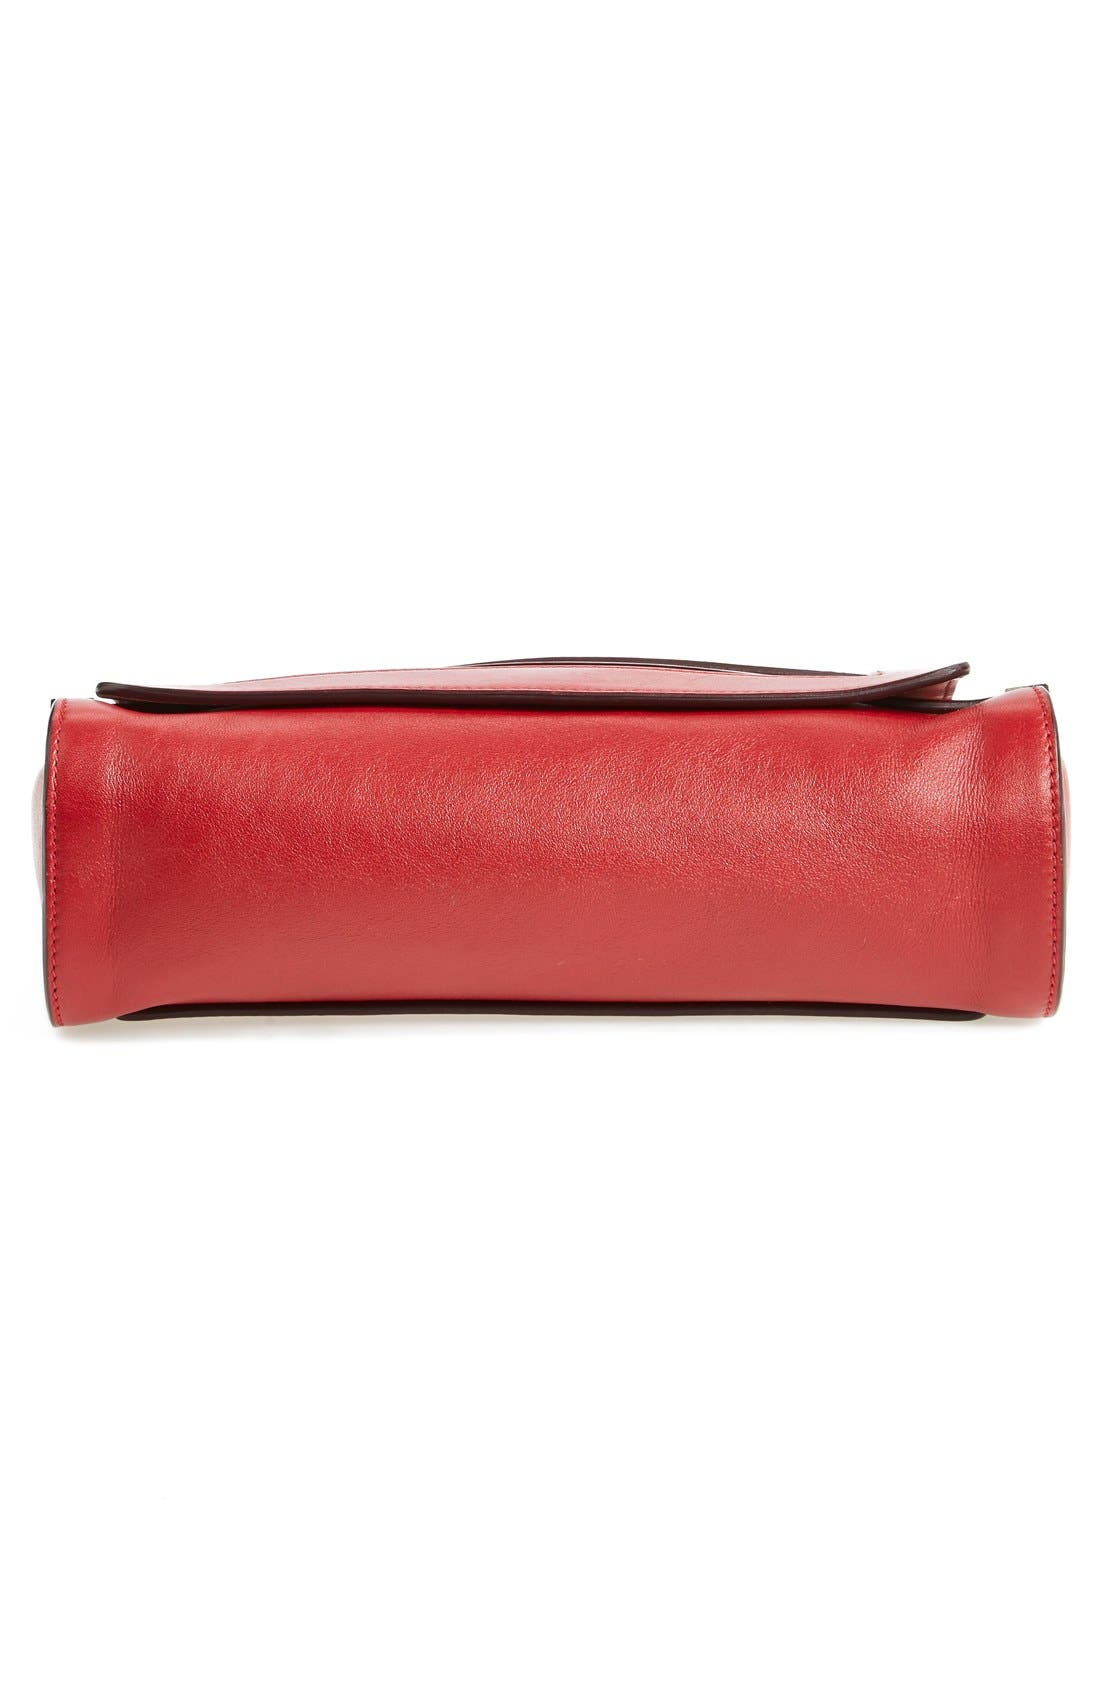 Alternate Image 5  - Chloé 'Elle - Medium' Clutch